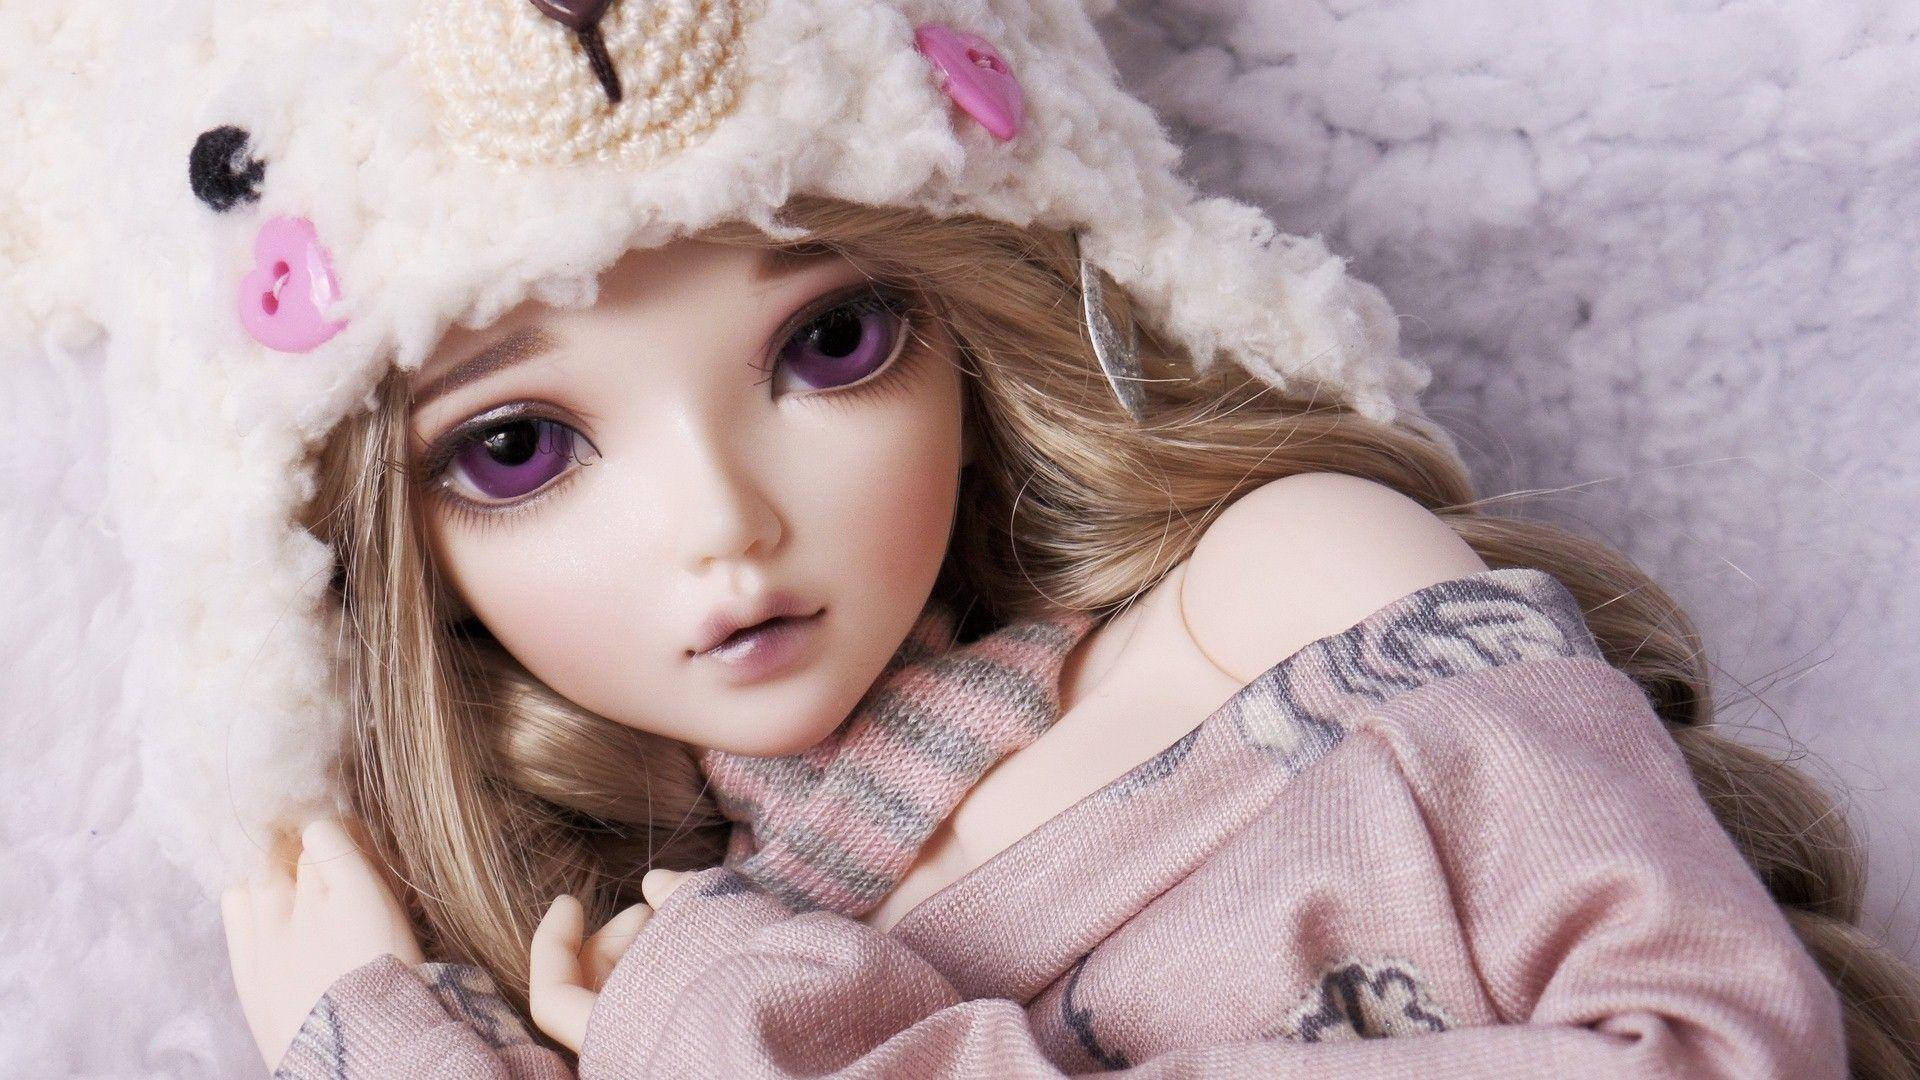 Cute barbie wallpapers wallpaper cave - Cute barbie doll wallpaper hd ...